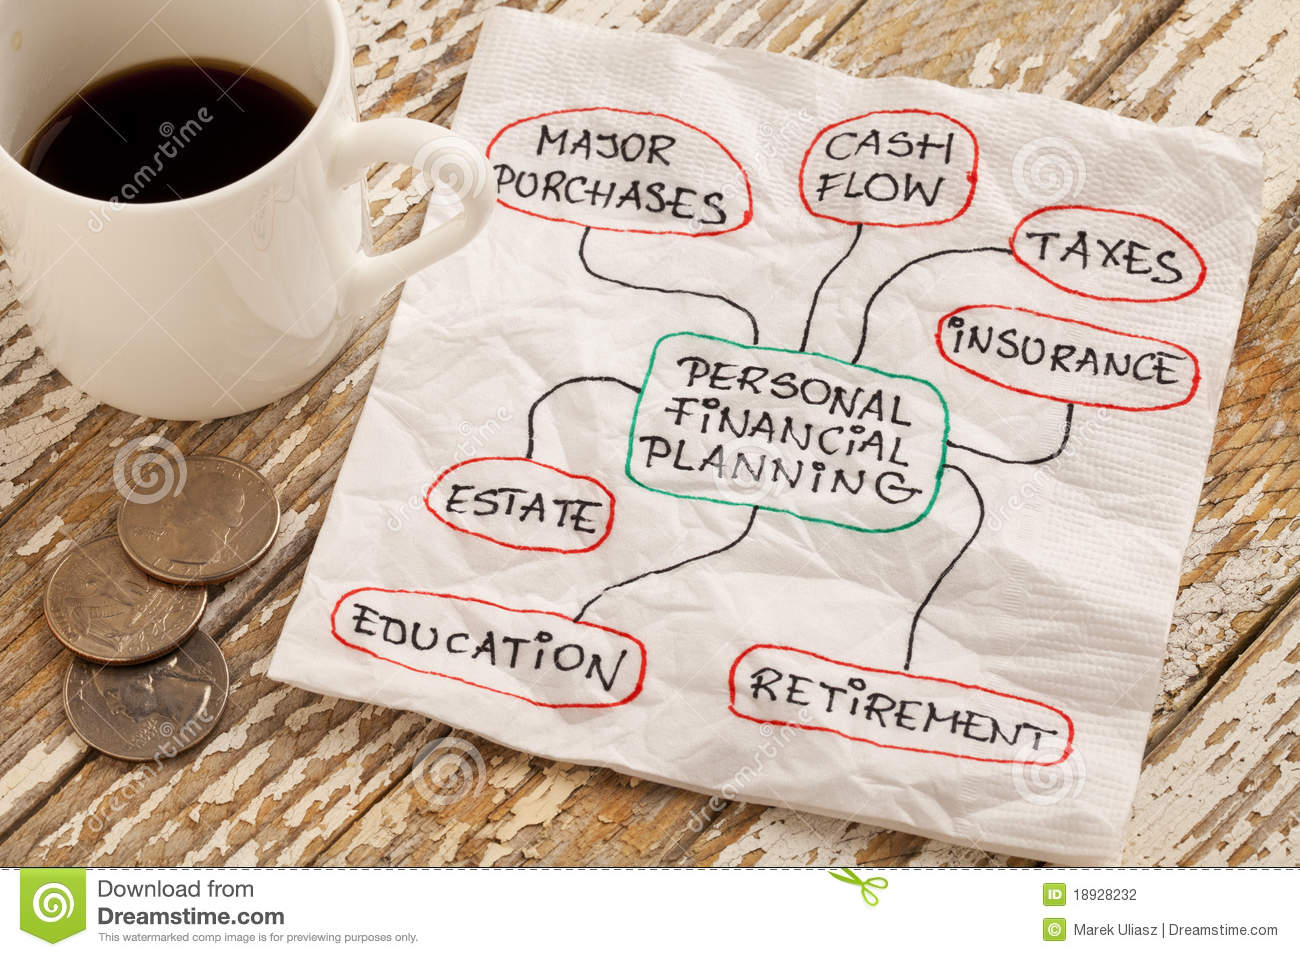 The importance of planing for retirement and money management for people of all ages